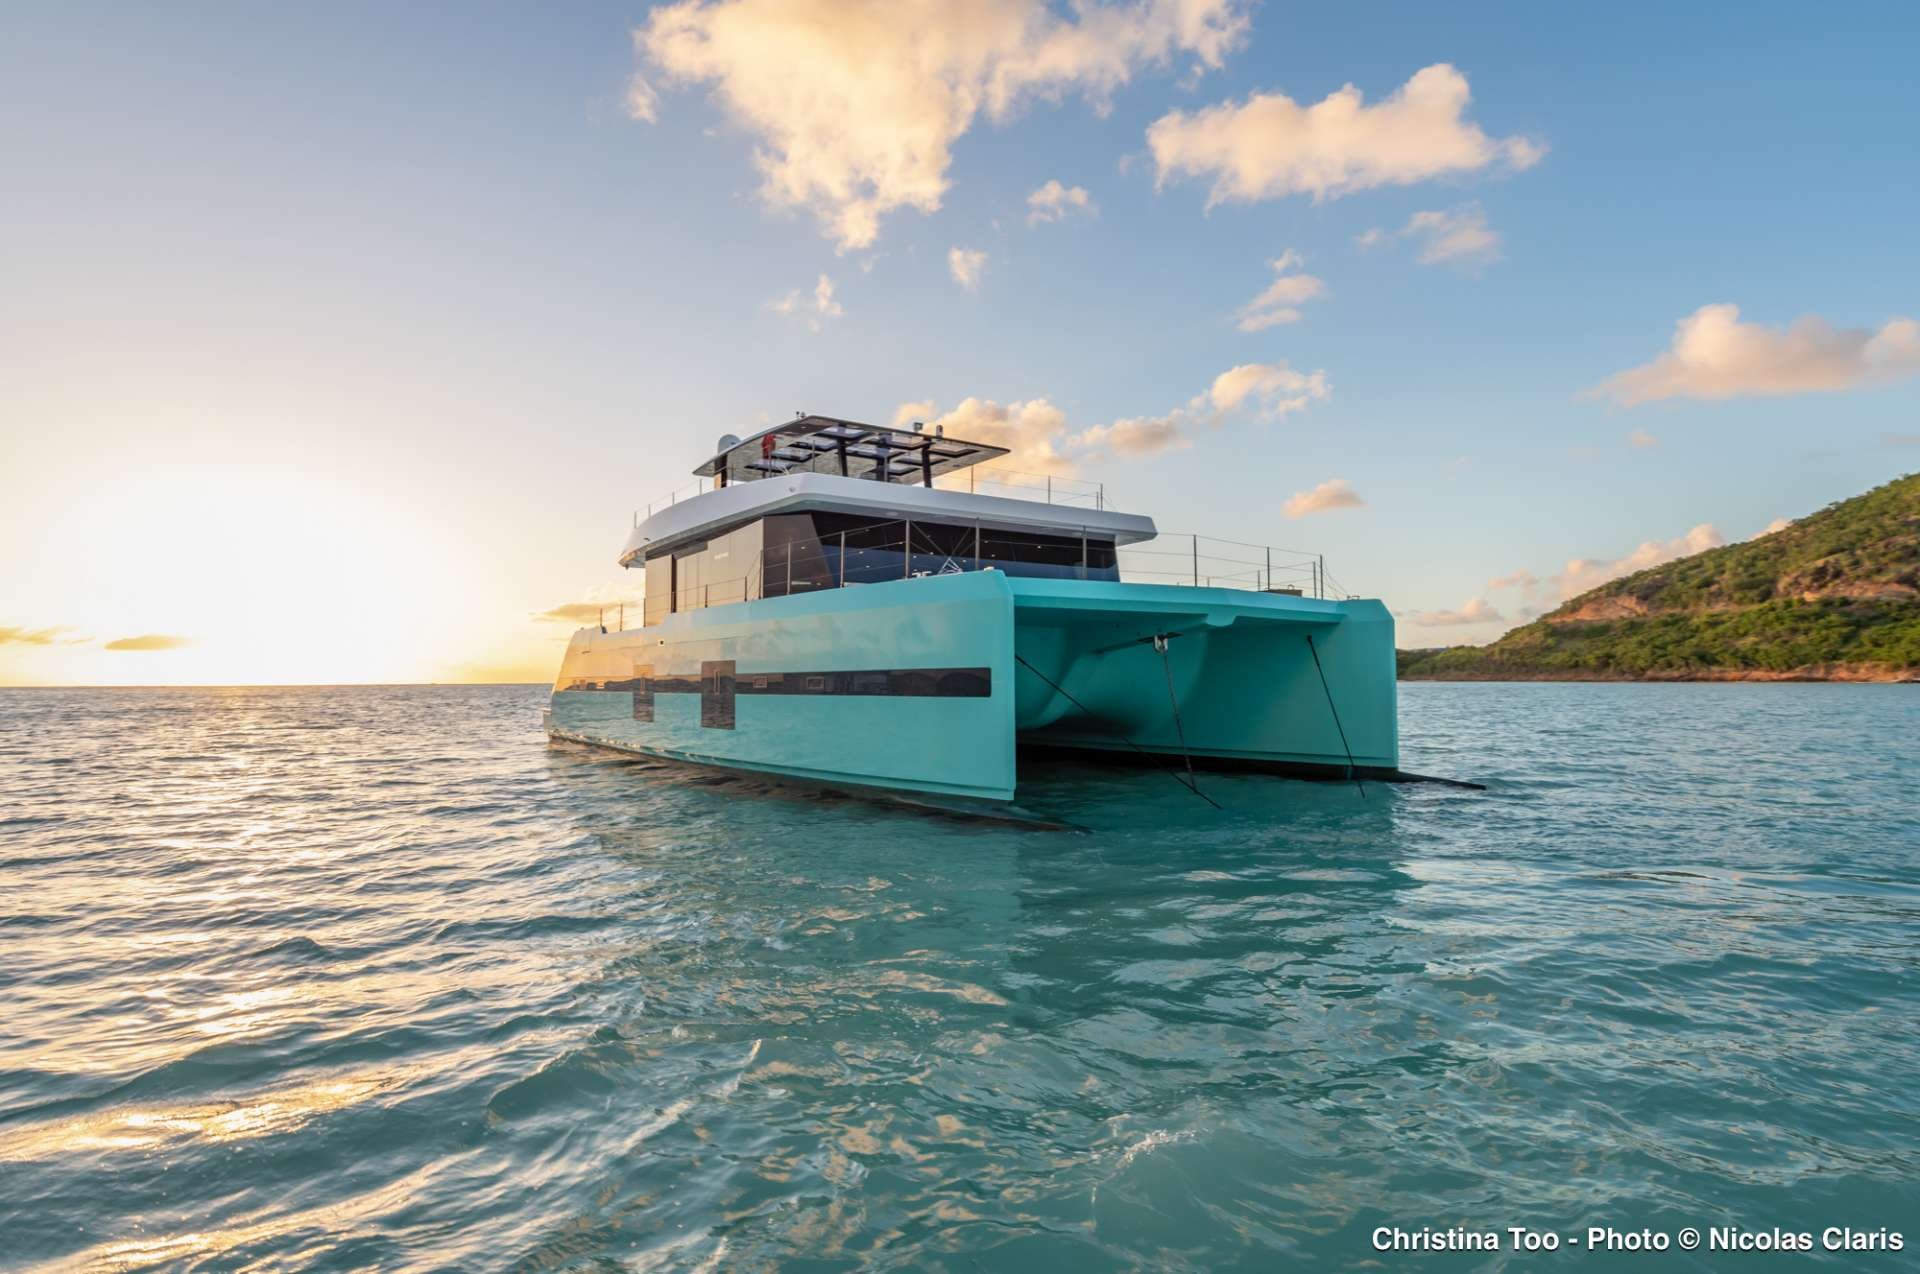 Power Yacht 'Power', 8 PAX, 4 Crew, 68.00 Ft, 20.00 Meters, Built 2017, Sunreef Yachts, Refit Year